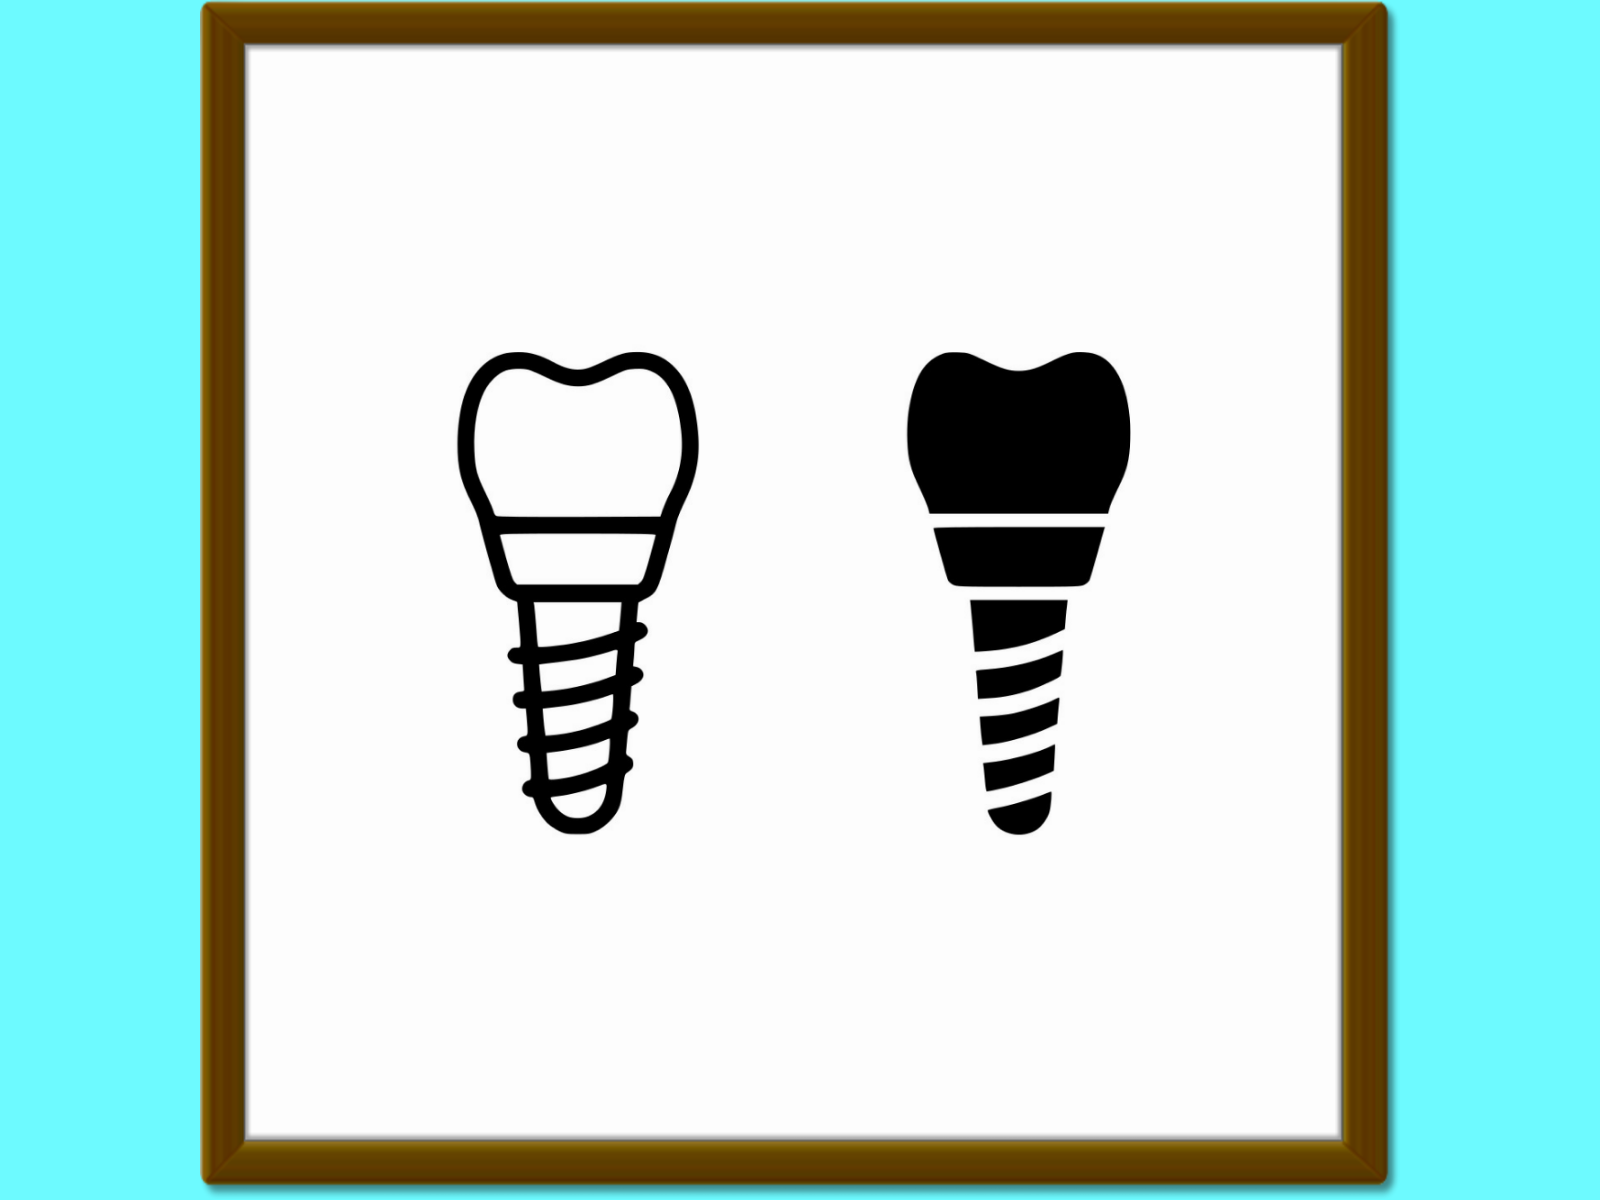 Download Free Dental Implant Line And Glyph Icon Stoma Graphic By Anrasoft for Cricut Explore, Silhouette and other cutting machines.